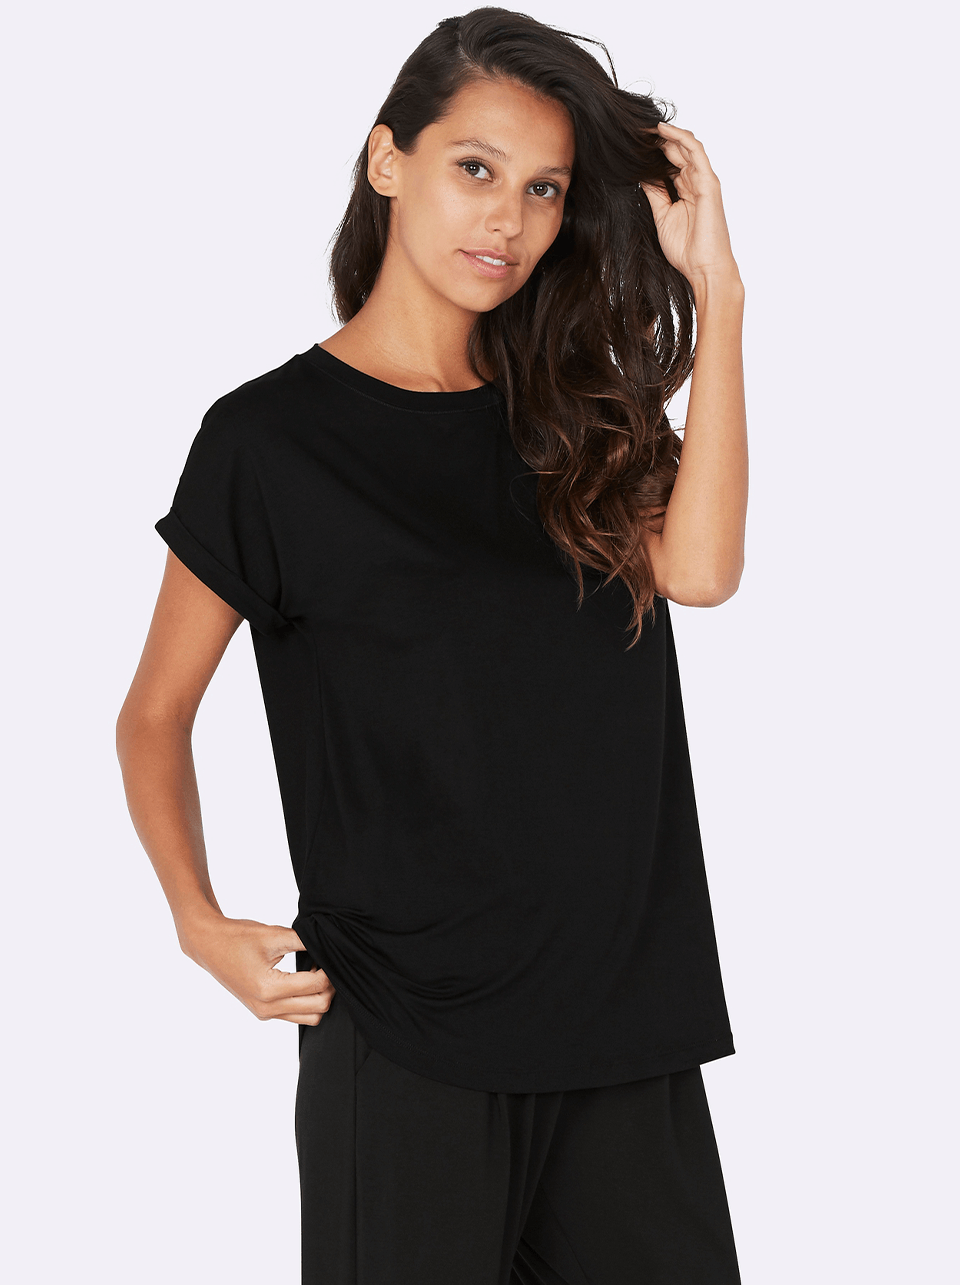 BOODY - Downtime Lounge Top Black